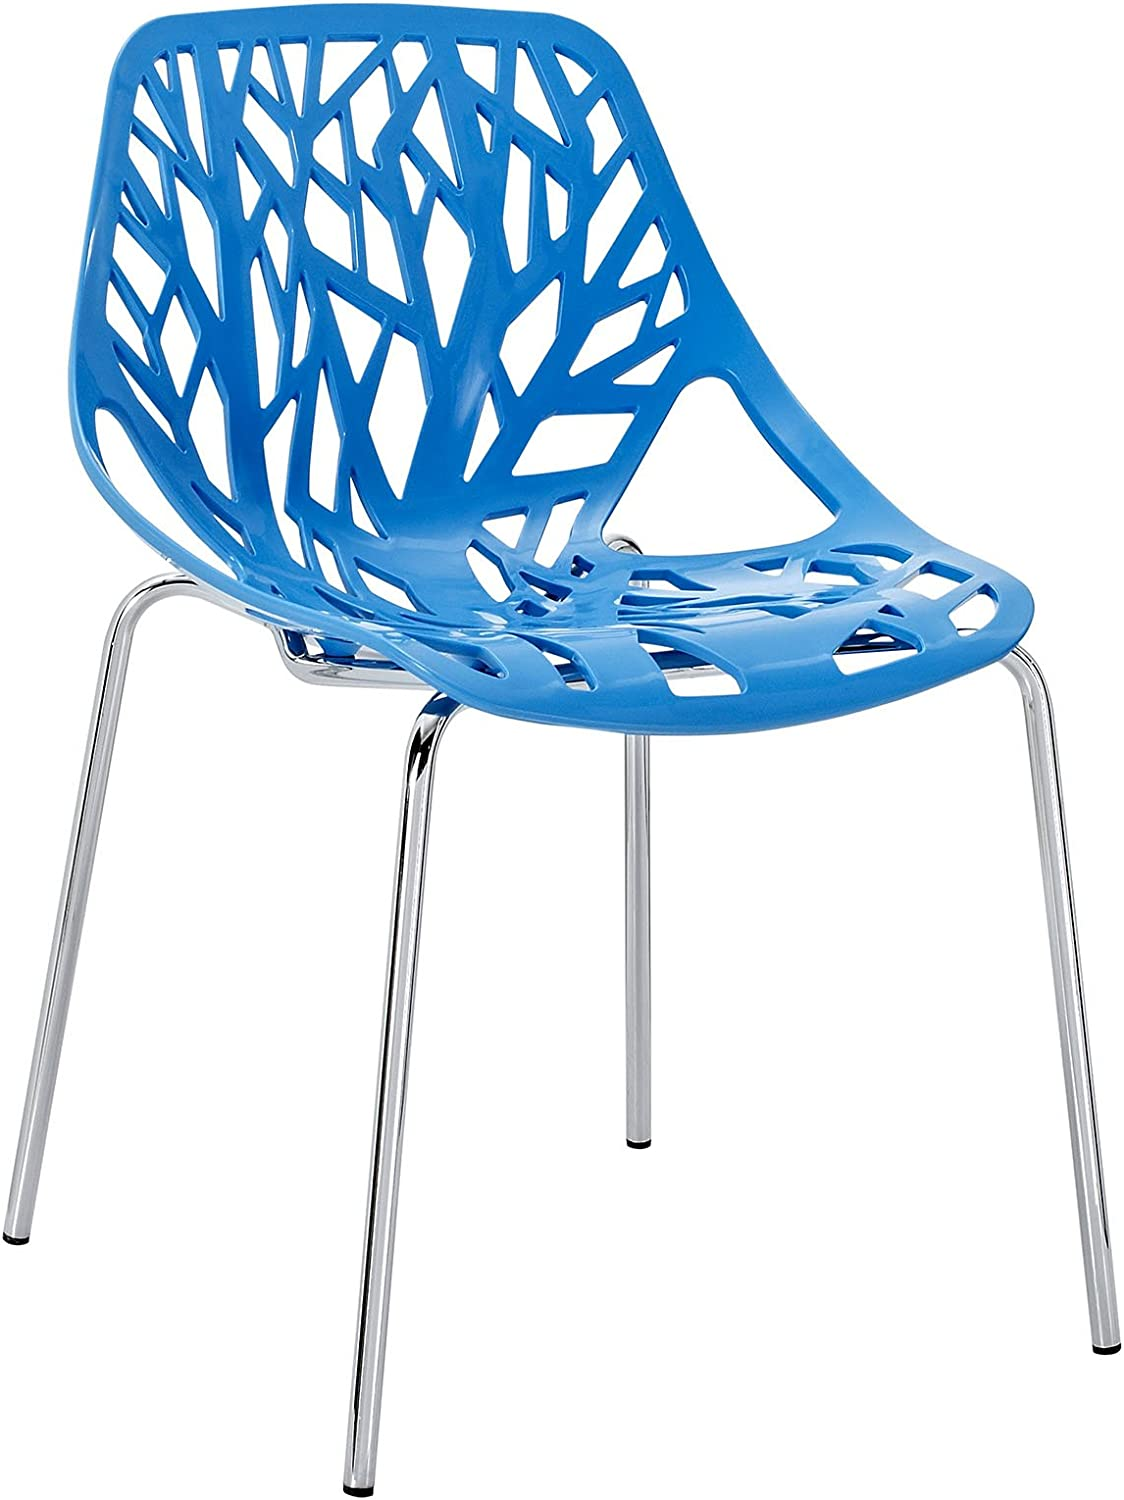 Modway Intricate Orchard Chair, bluee